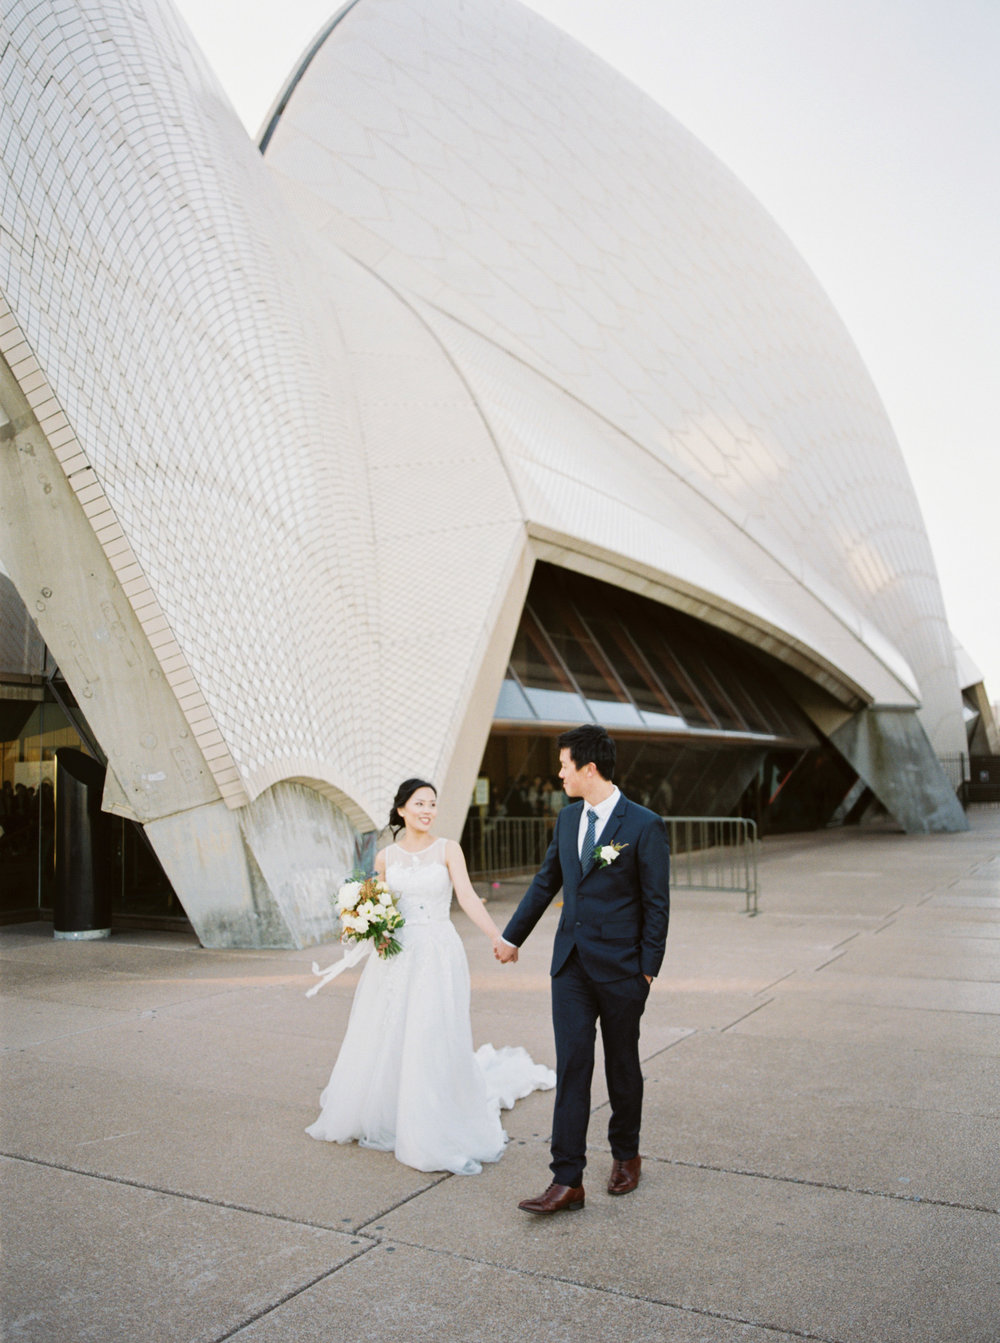 00048- Fine Art Film Australia Destination Sydney Wedding Photographer Sheri McMahon.jpg